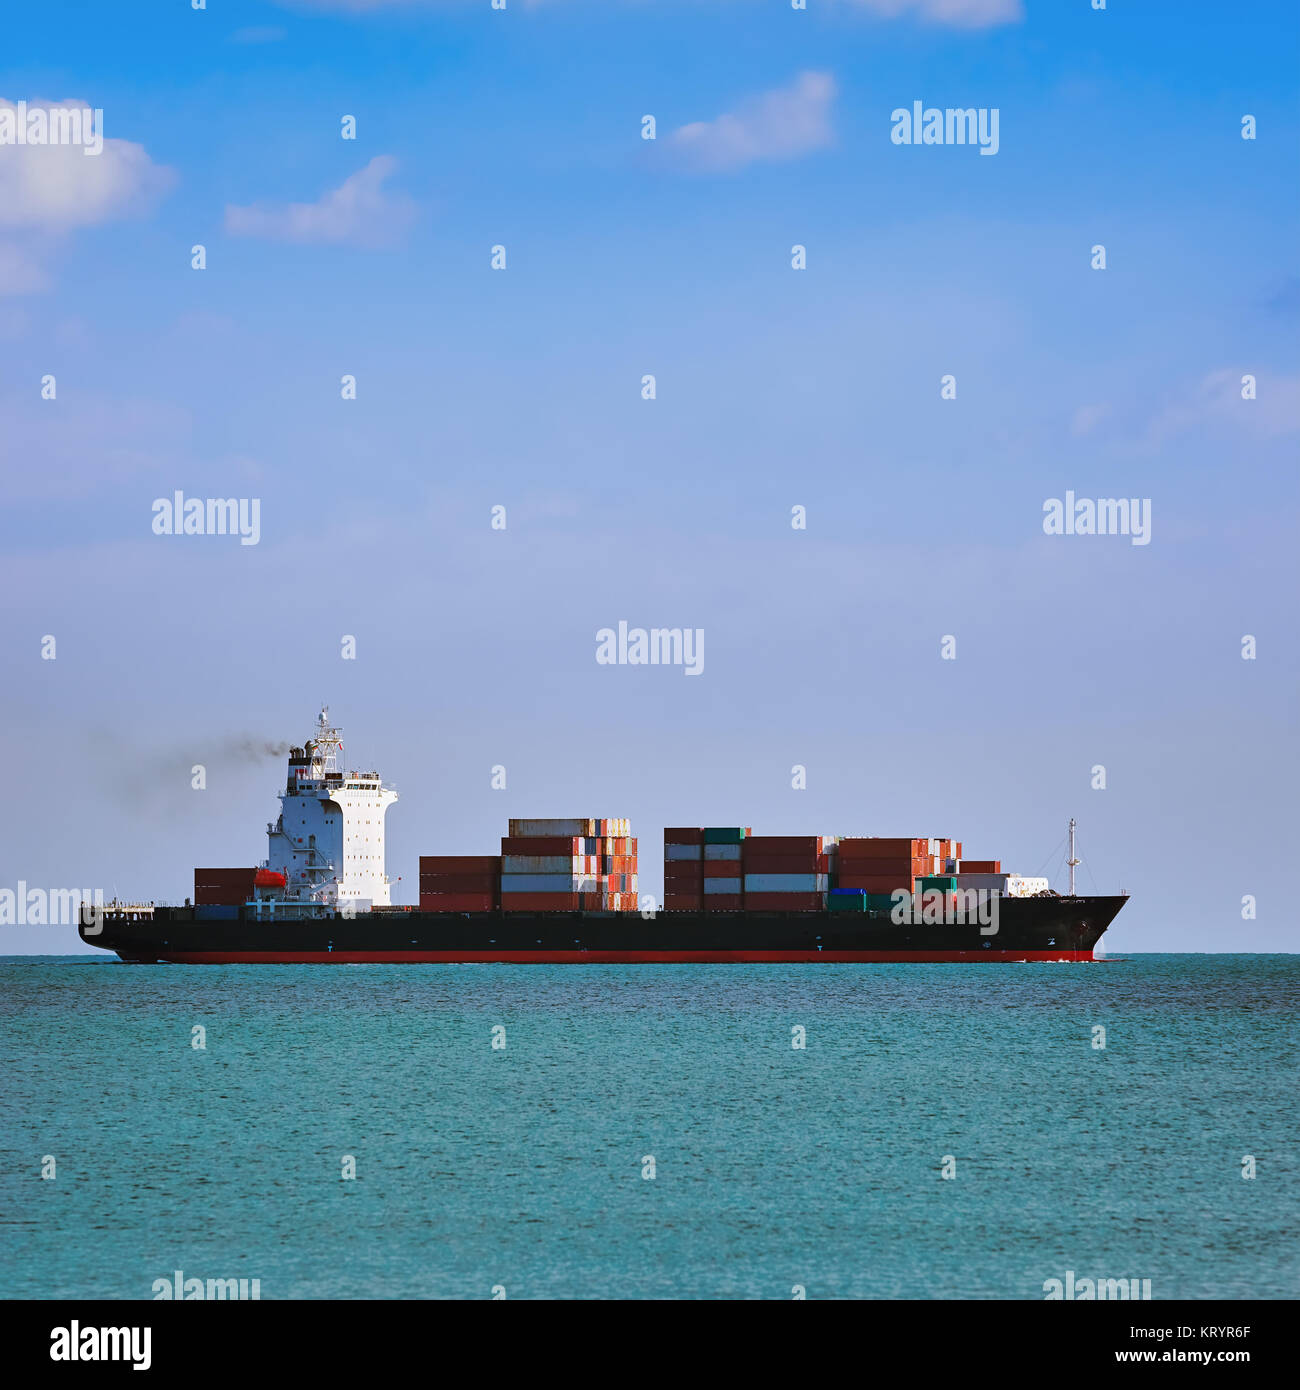 Container Ship in the Sea - Stock Image